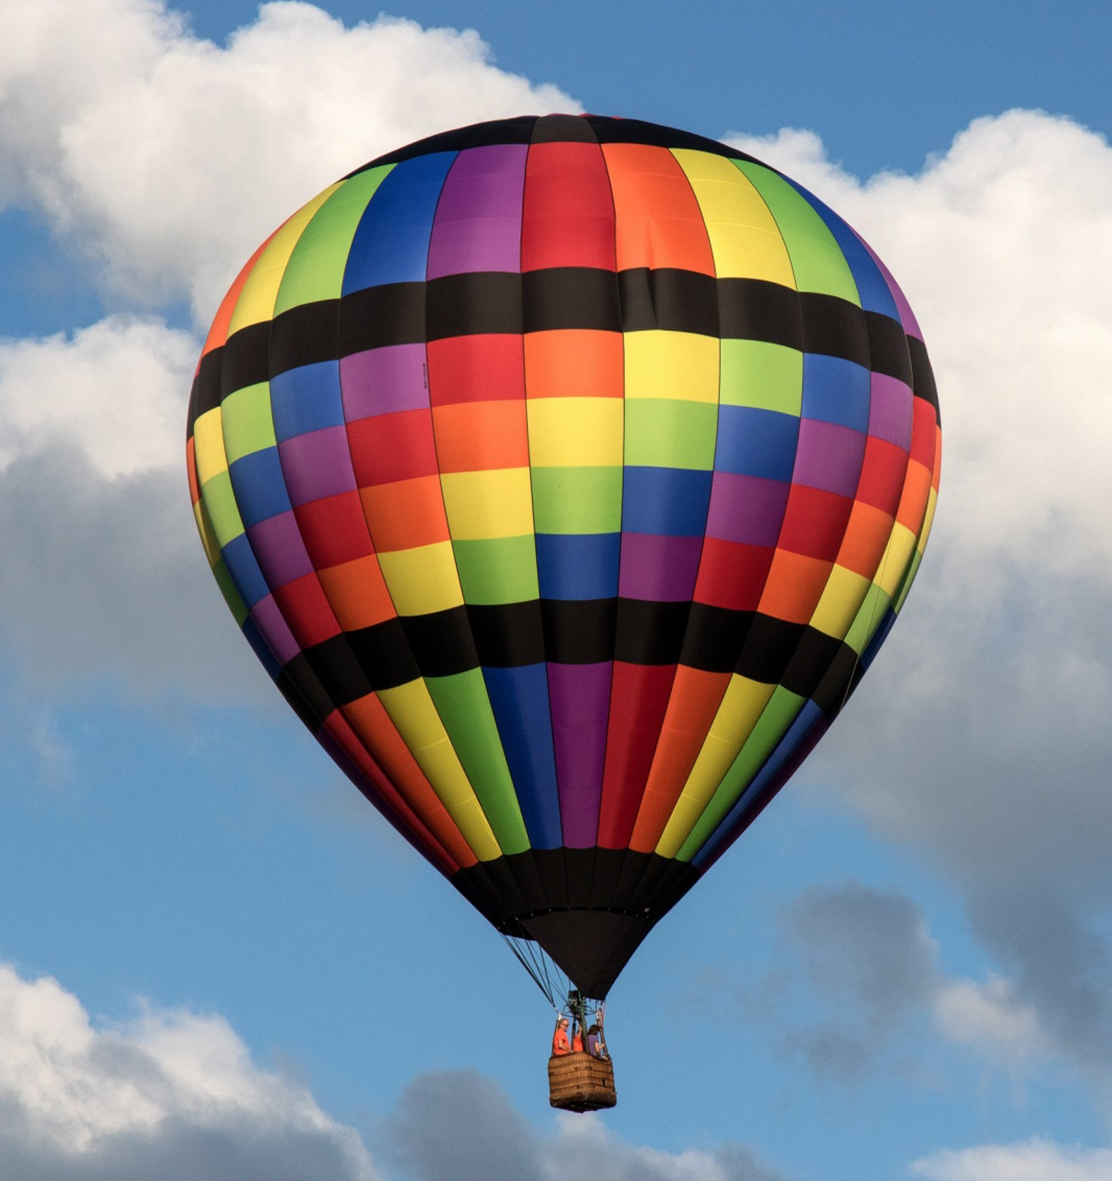 flying hot air balloon image